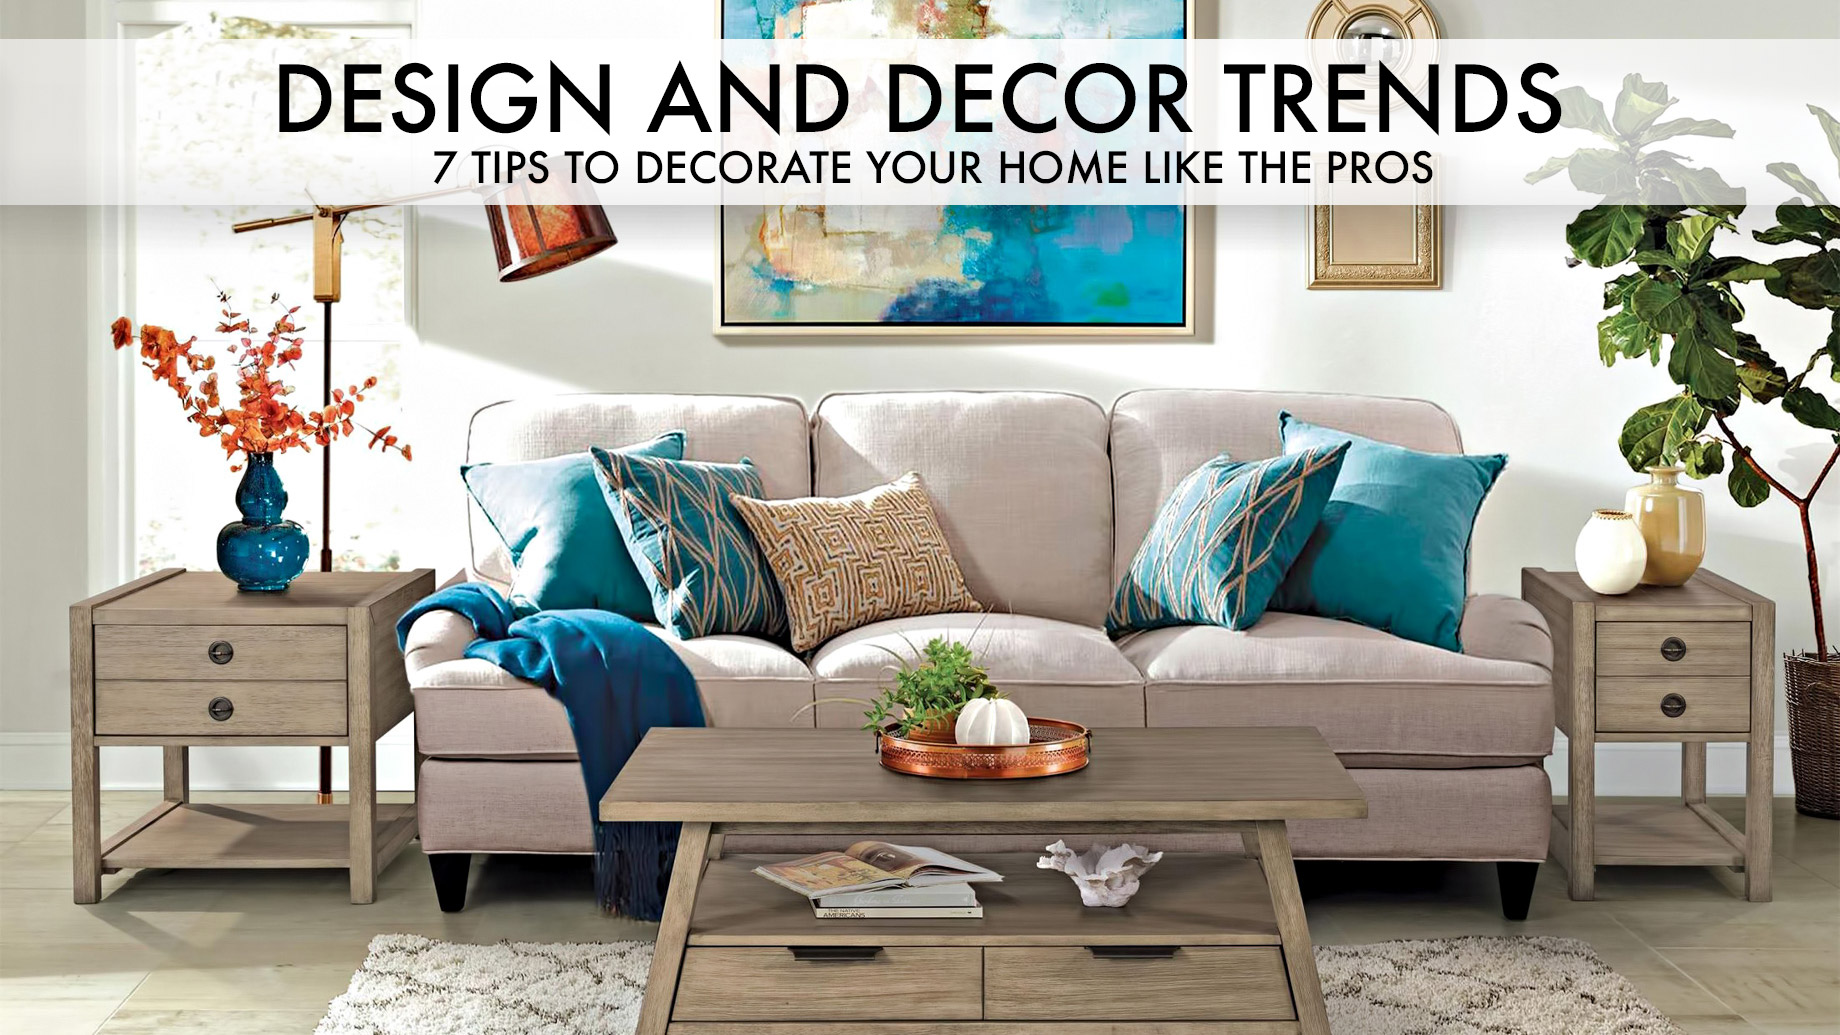 Design and Decor Trends - 7 Tips to Decorate Your Home like the Pros